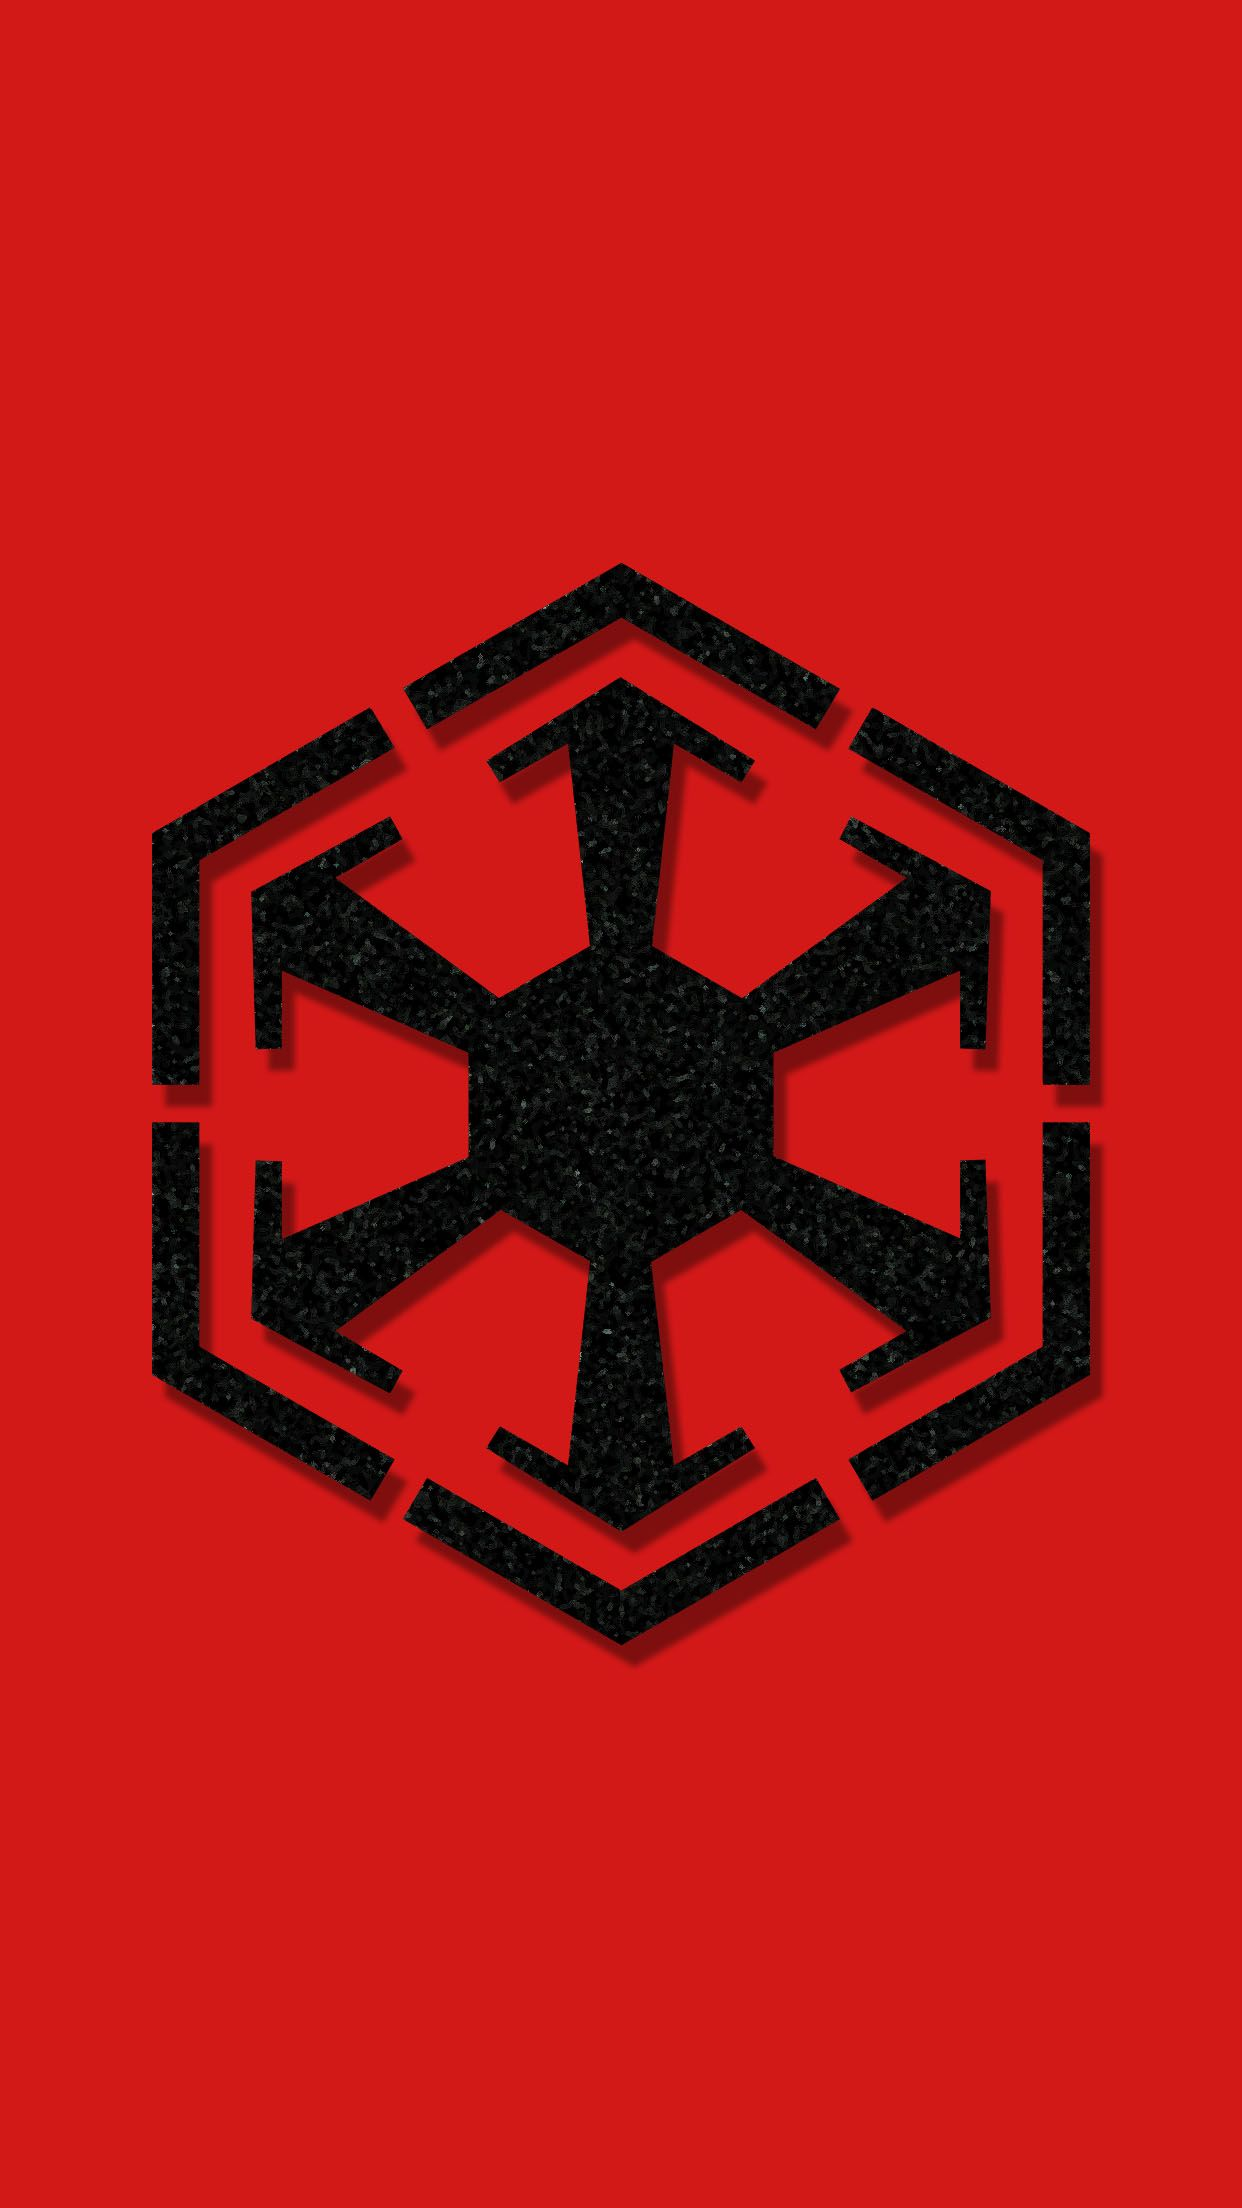 Sith Empire Wallpaper Posted By Sarah Simpson